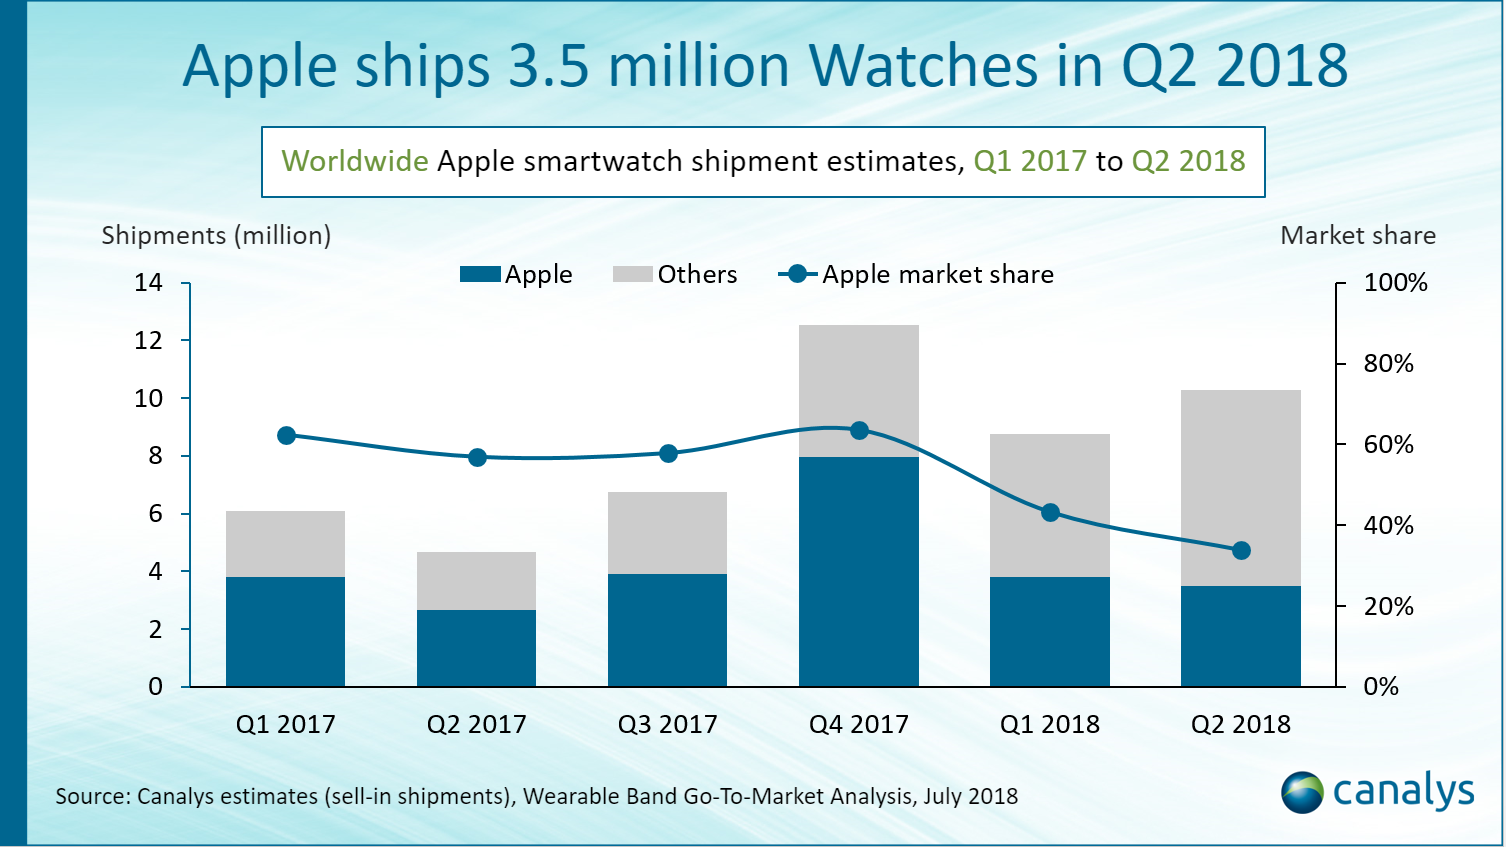 Canalys Newsroom- Apple ships 3 5 million Watches in Q2 2018